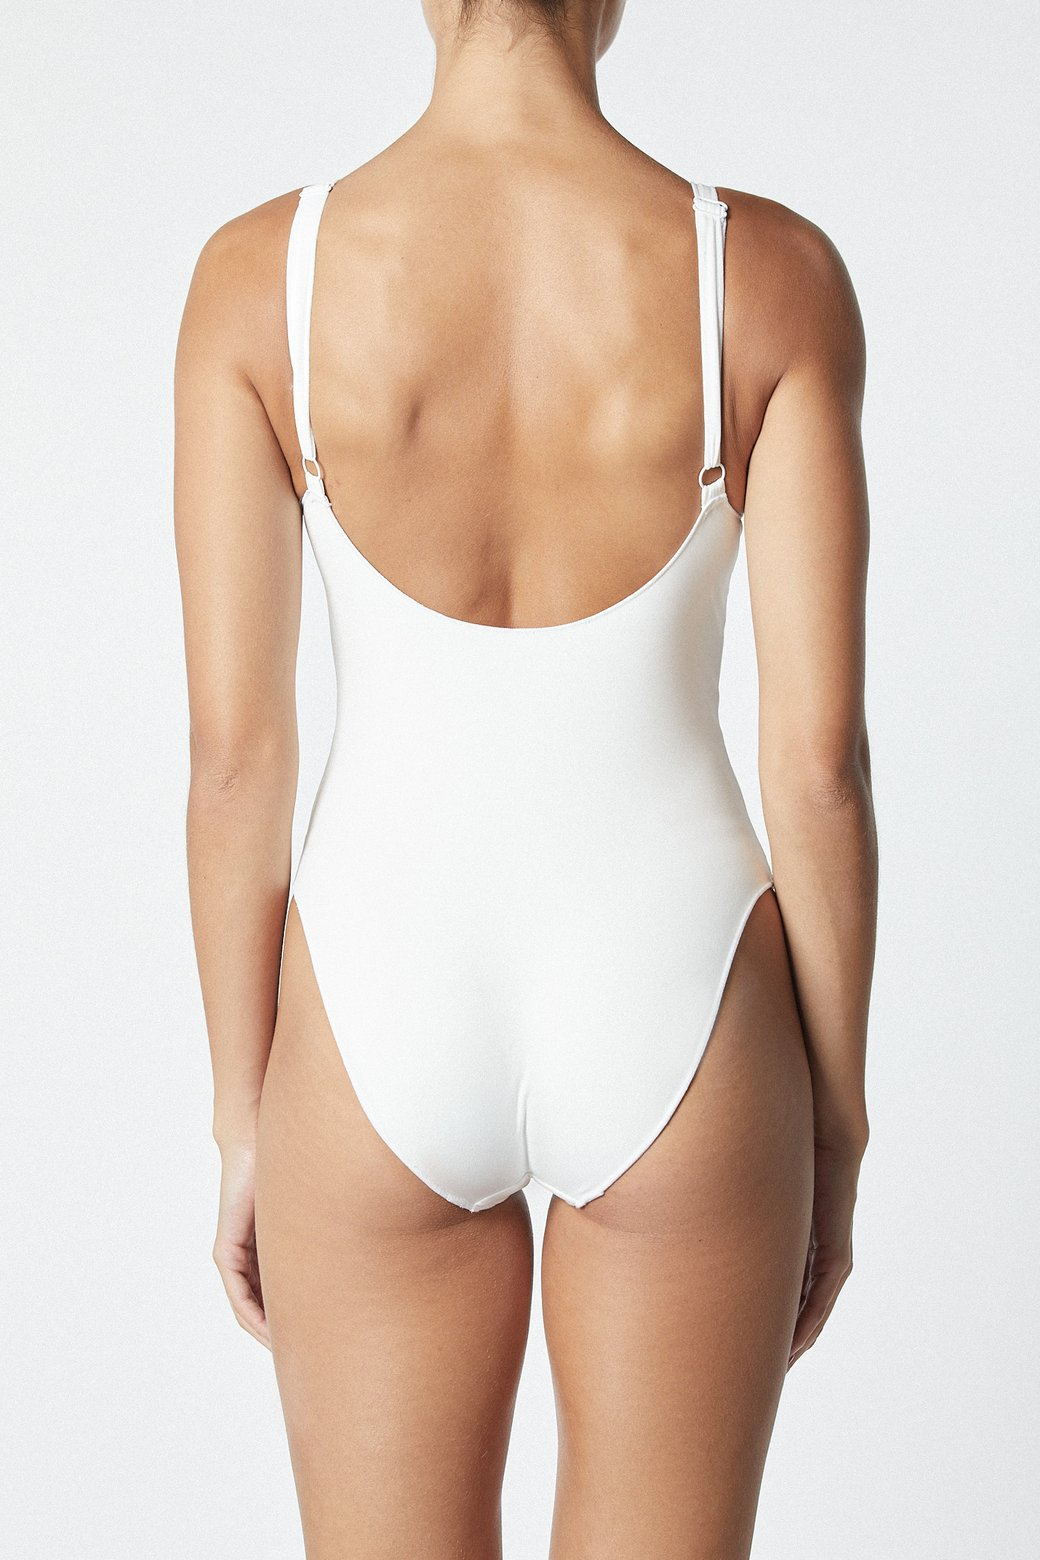 THE CONTOUR ONE PIECE - WHITE - IT'S NOW COOL